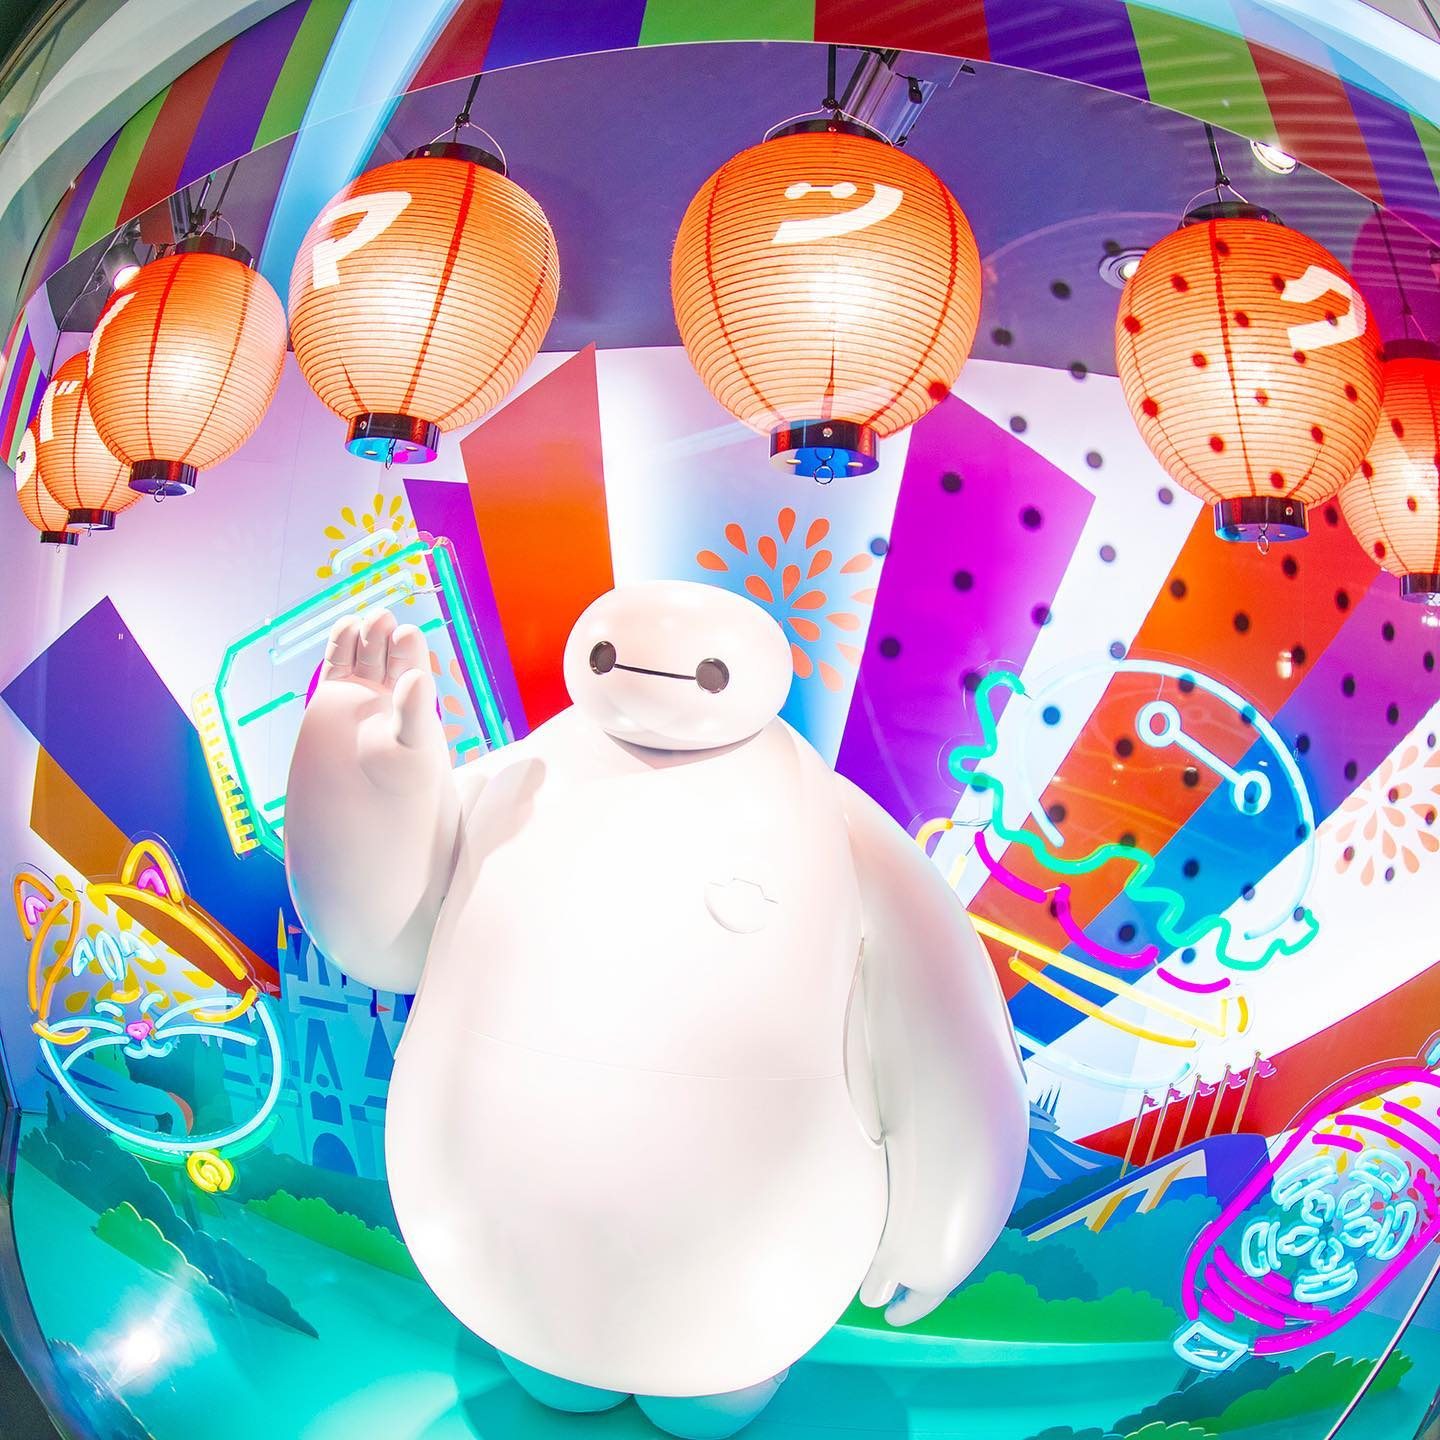 Let's have fun with Baymax! ハピネスレベルが最高潮に✨ #happyfairwithbaymax #baymax #mochi...のイメージ